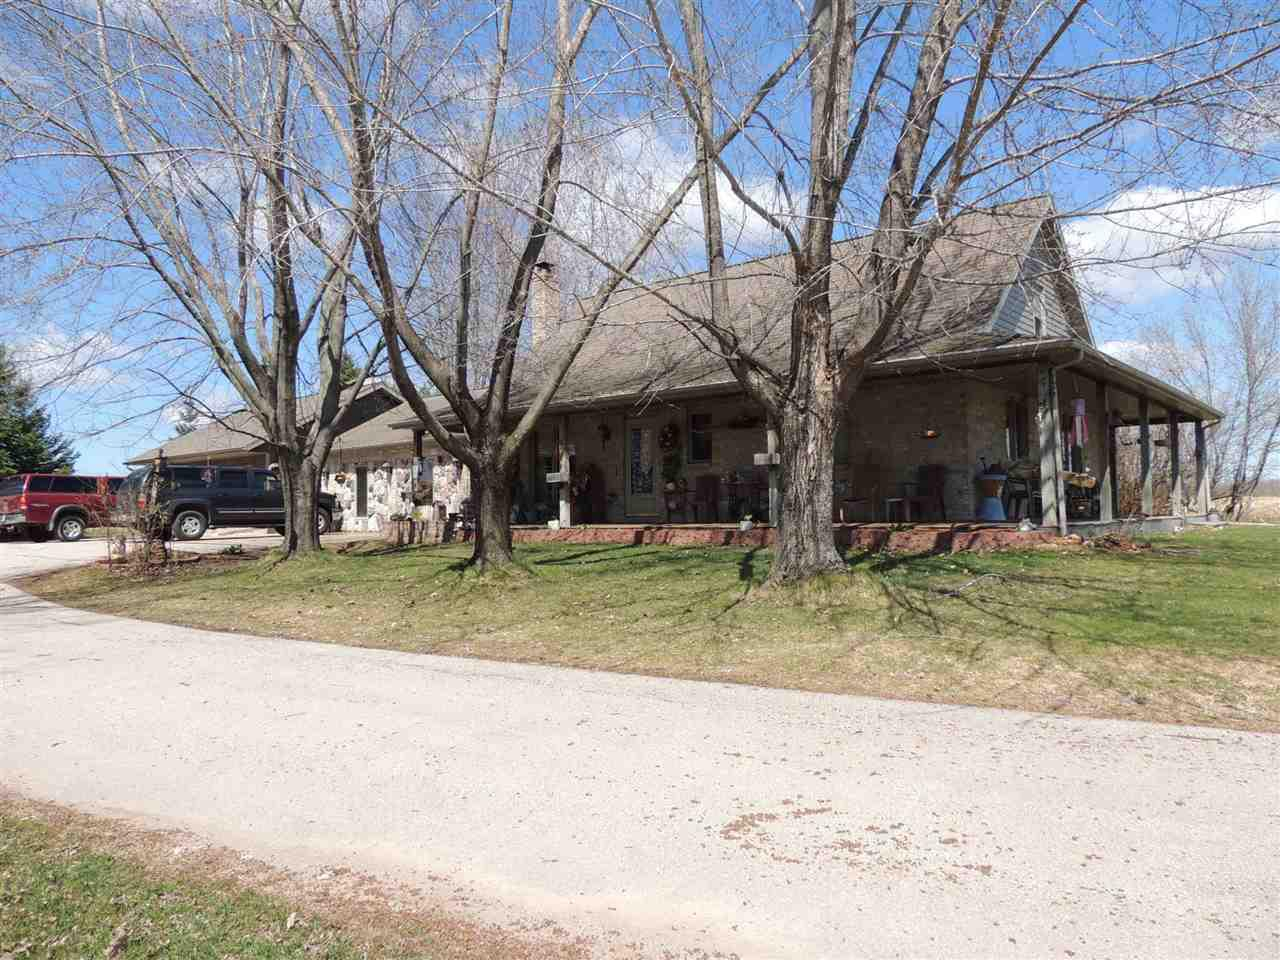 Farmette located on aprox. 6 acres. Large 100'x50' shed with about 1/3 with cement. Shed is partial insulated and has work shop. Barn needs some TLC. Additional 50 acres of ag land may also be purchased. Living room can easily be sectioned to make additional bedrooms. Home has some hardwood floors, two sided fireplace, pellet stove,and large kitchen with snack bar.  Home is currently on 25 acres zoned ag. if buyer only wants the home and aprox. 6 acres it will be surveyed off of the parcel and possible rezone to residential.